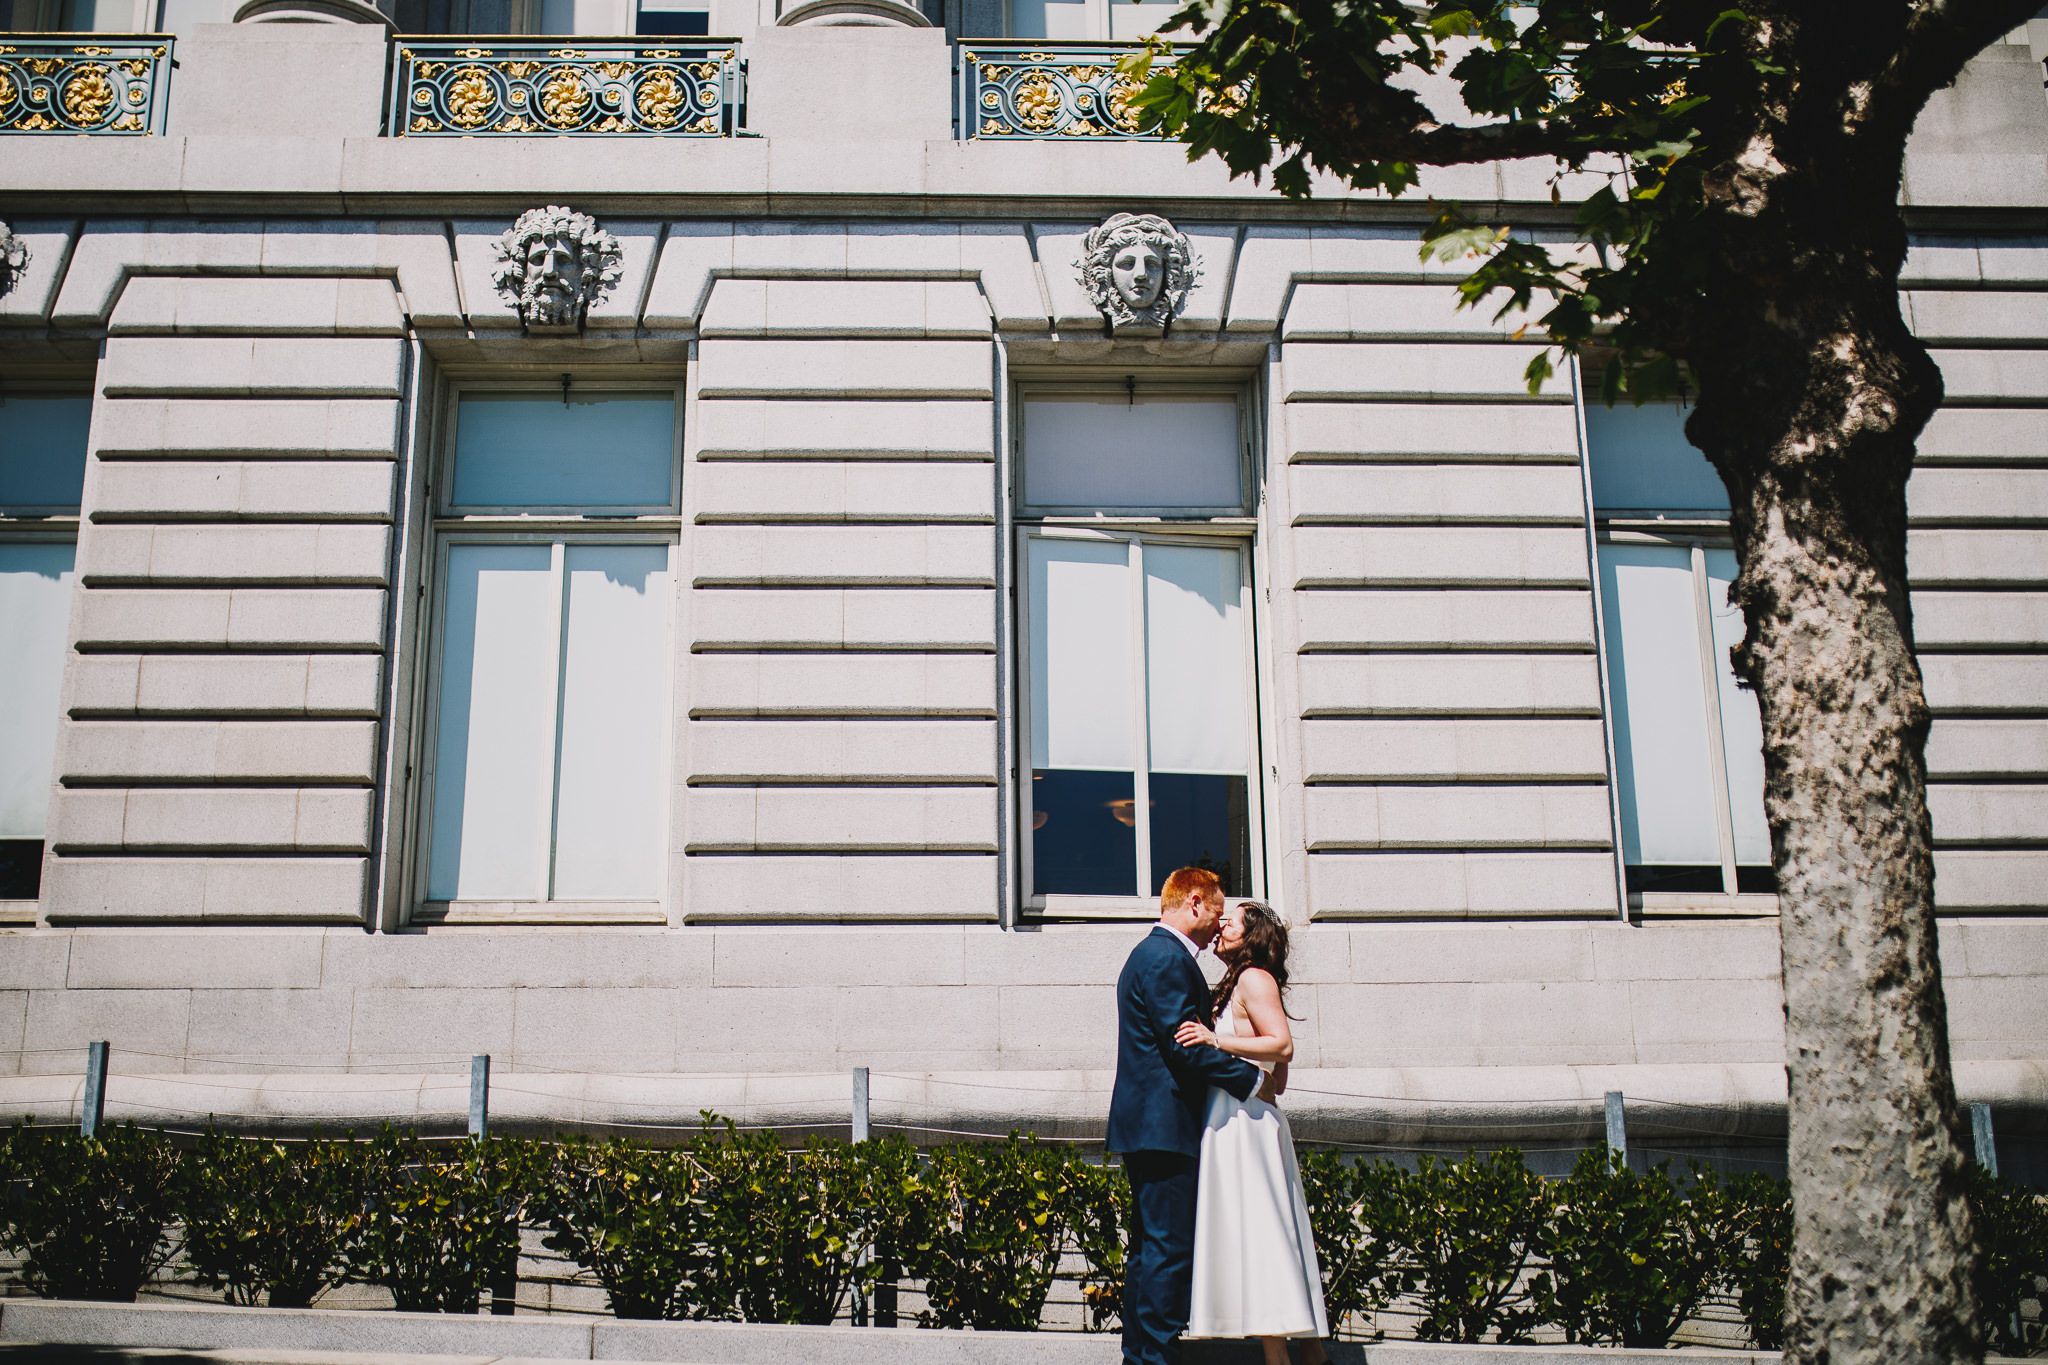 Archer Inspired Photography SF City Hall Elopement Wedding Lifestyle Documentary Affordable Photographer-48.jpg